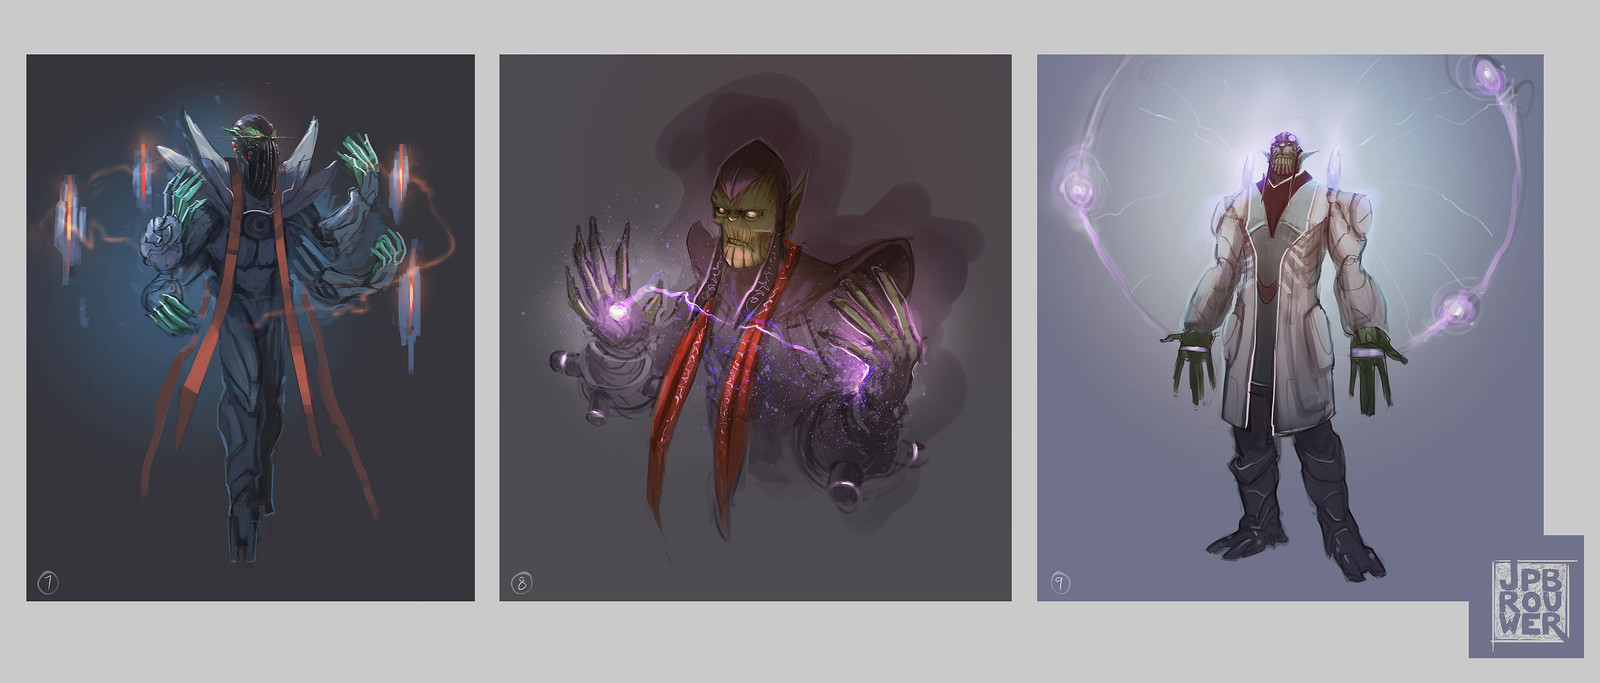 More Skrull priest concepts